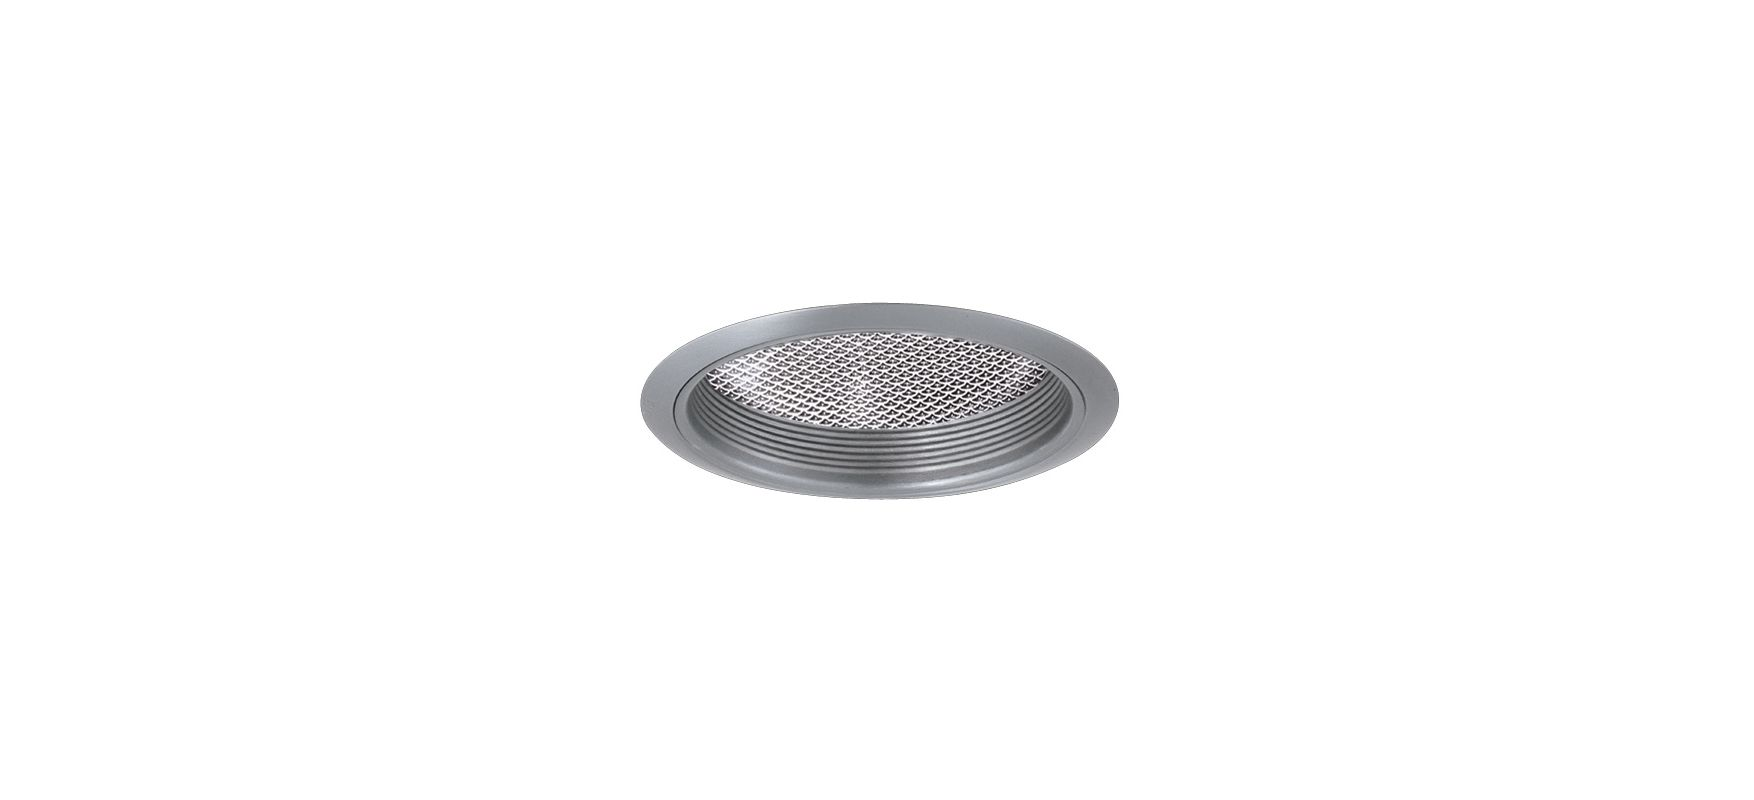 "Elco EL742 7"" CFL Reflector with Regressed Albalite Lens and Baffle"